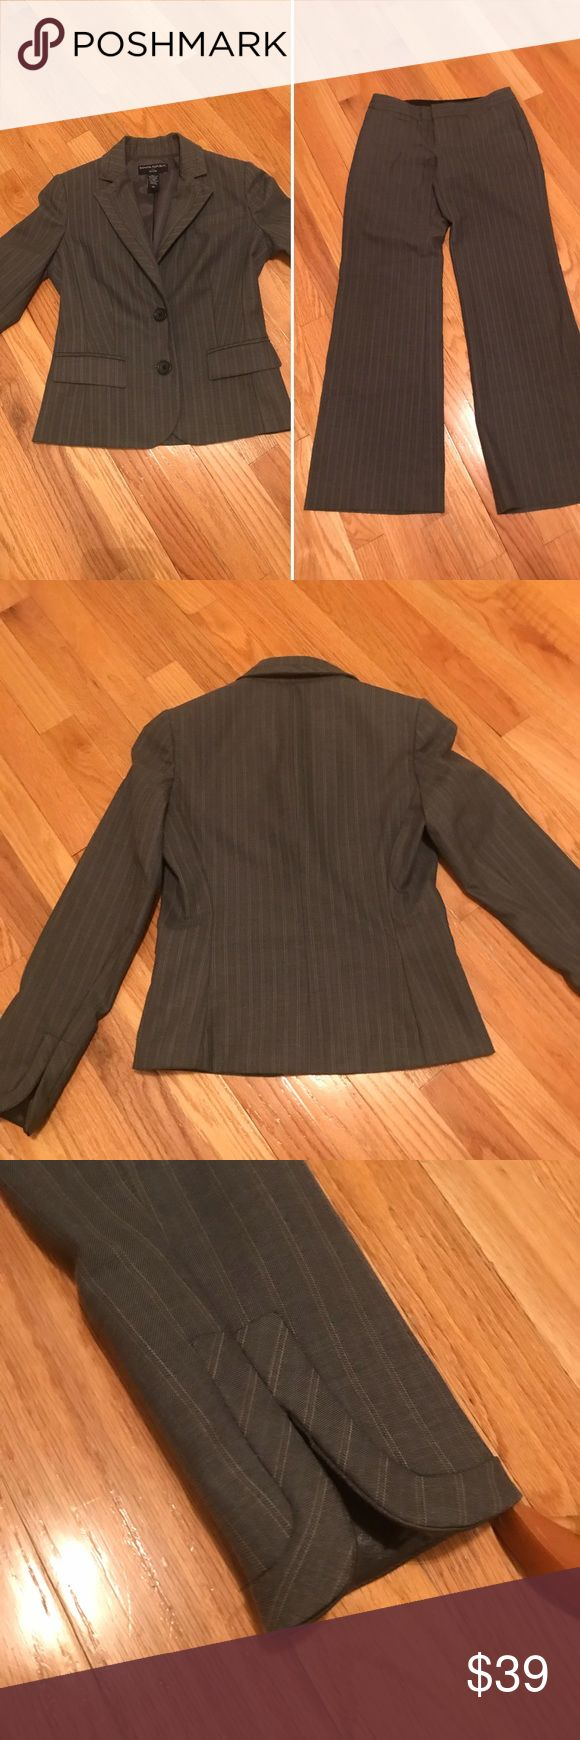 Women's Banana Republic Petite Suit:Jacket & Pants In excellent condition Non smoking home Measurements shown in pictures Gray with pin stripes Pants and jacket: 79% polyester, 18% rayon, 3% spandex (machine wash) Jacket lining: 100% acetate (machine wash) *** note the pants are 00P and jacket 0P Banana Republic Jackets & Coats Blazers